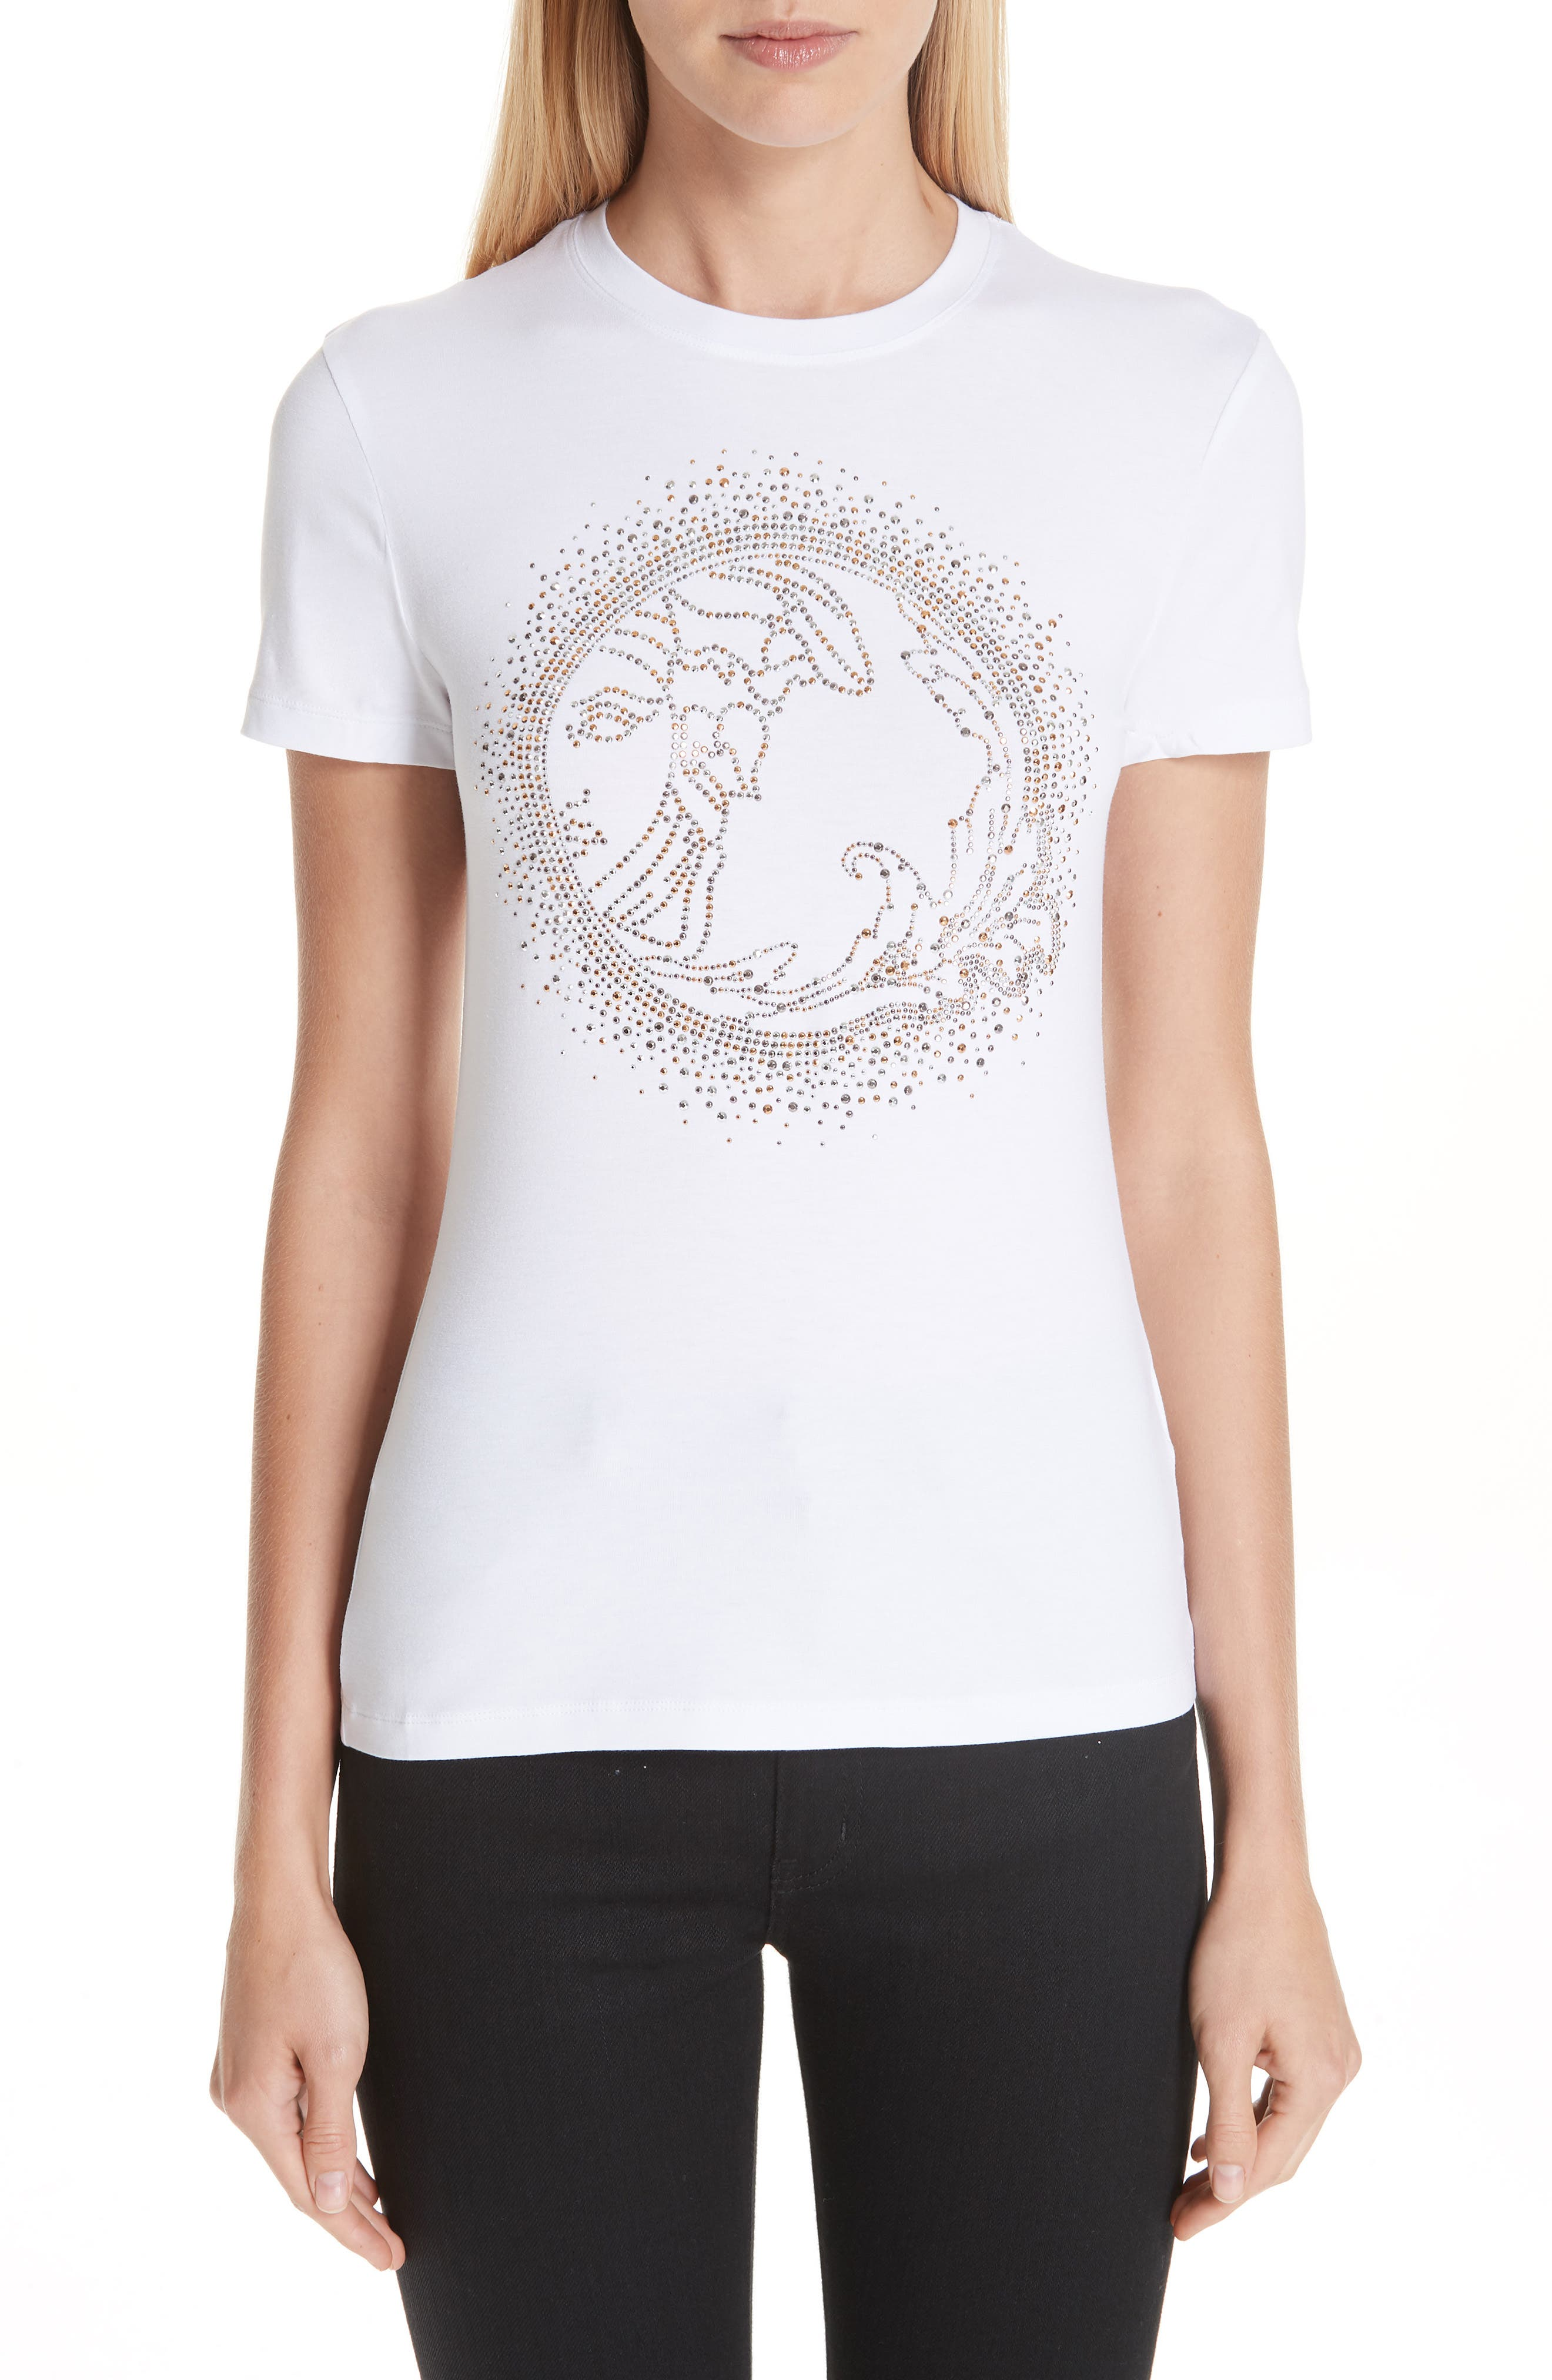 VERSACE COLLECTION, Medusa Crystal Embellished Jersey Tee, Main thumbnail 1, color, 111